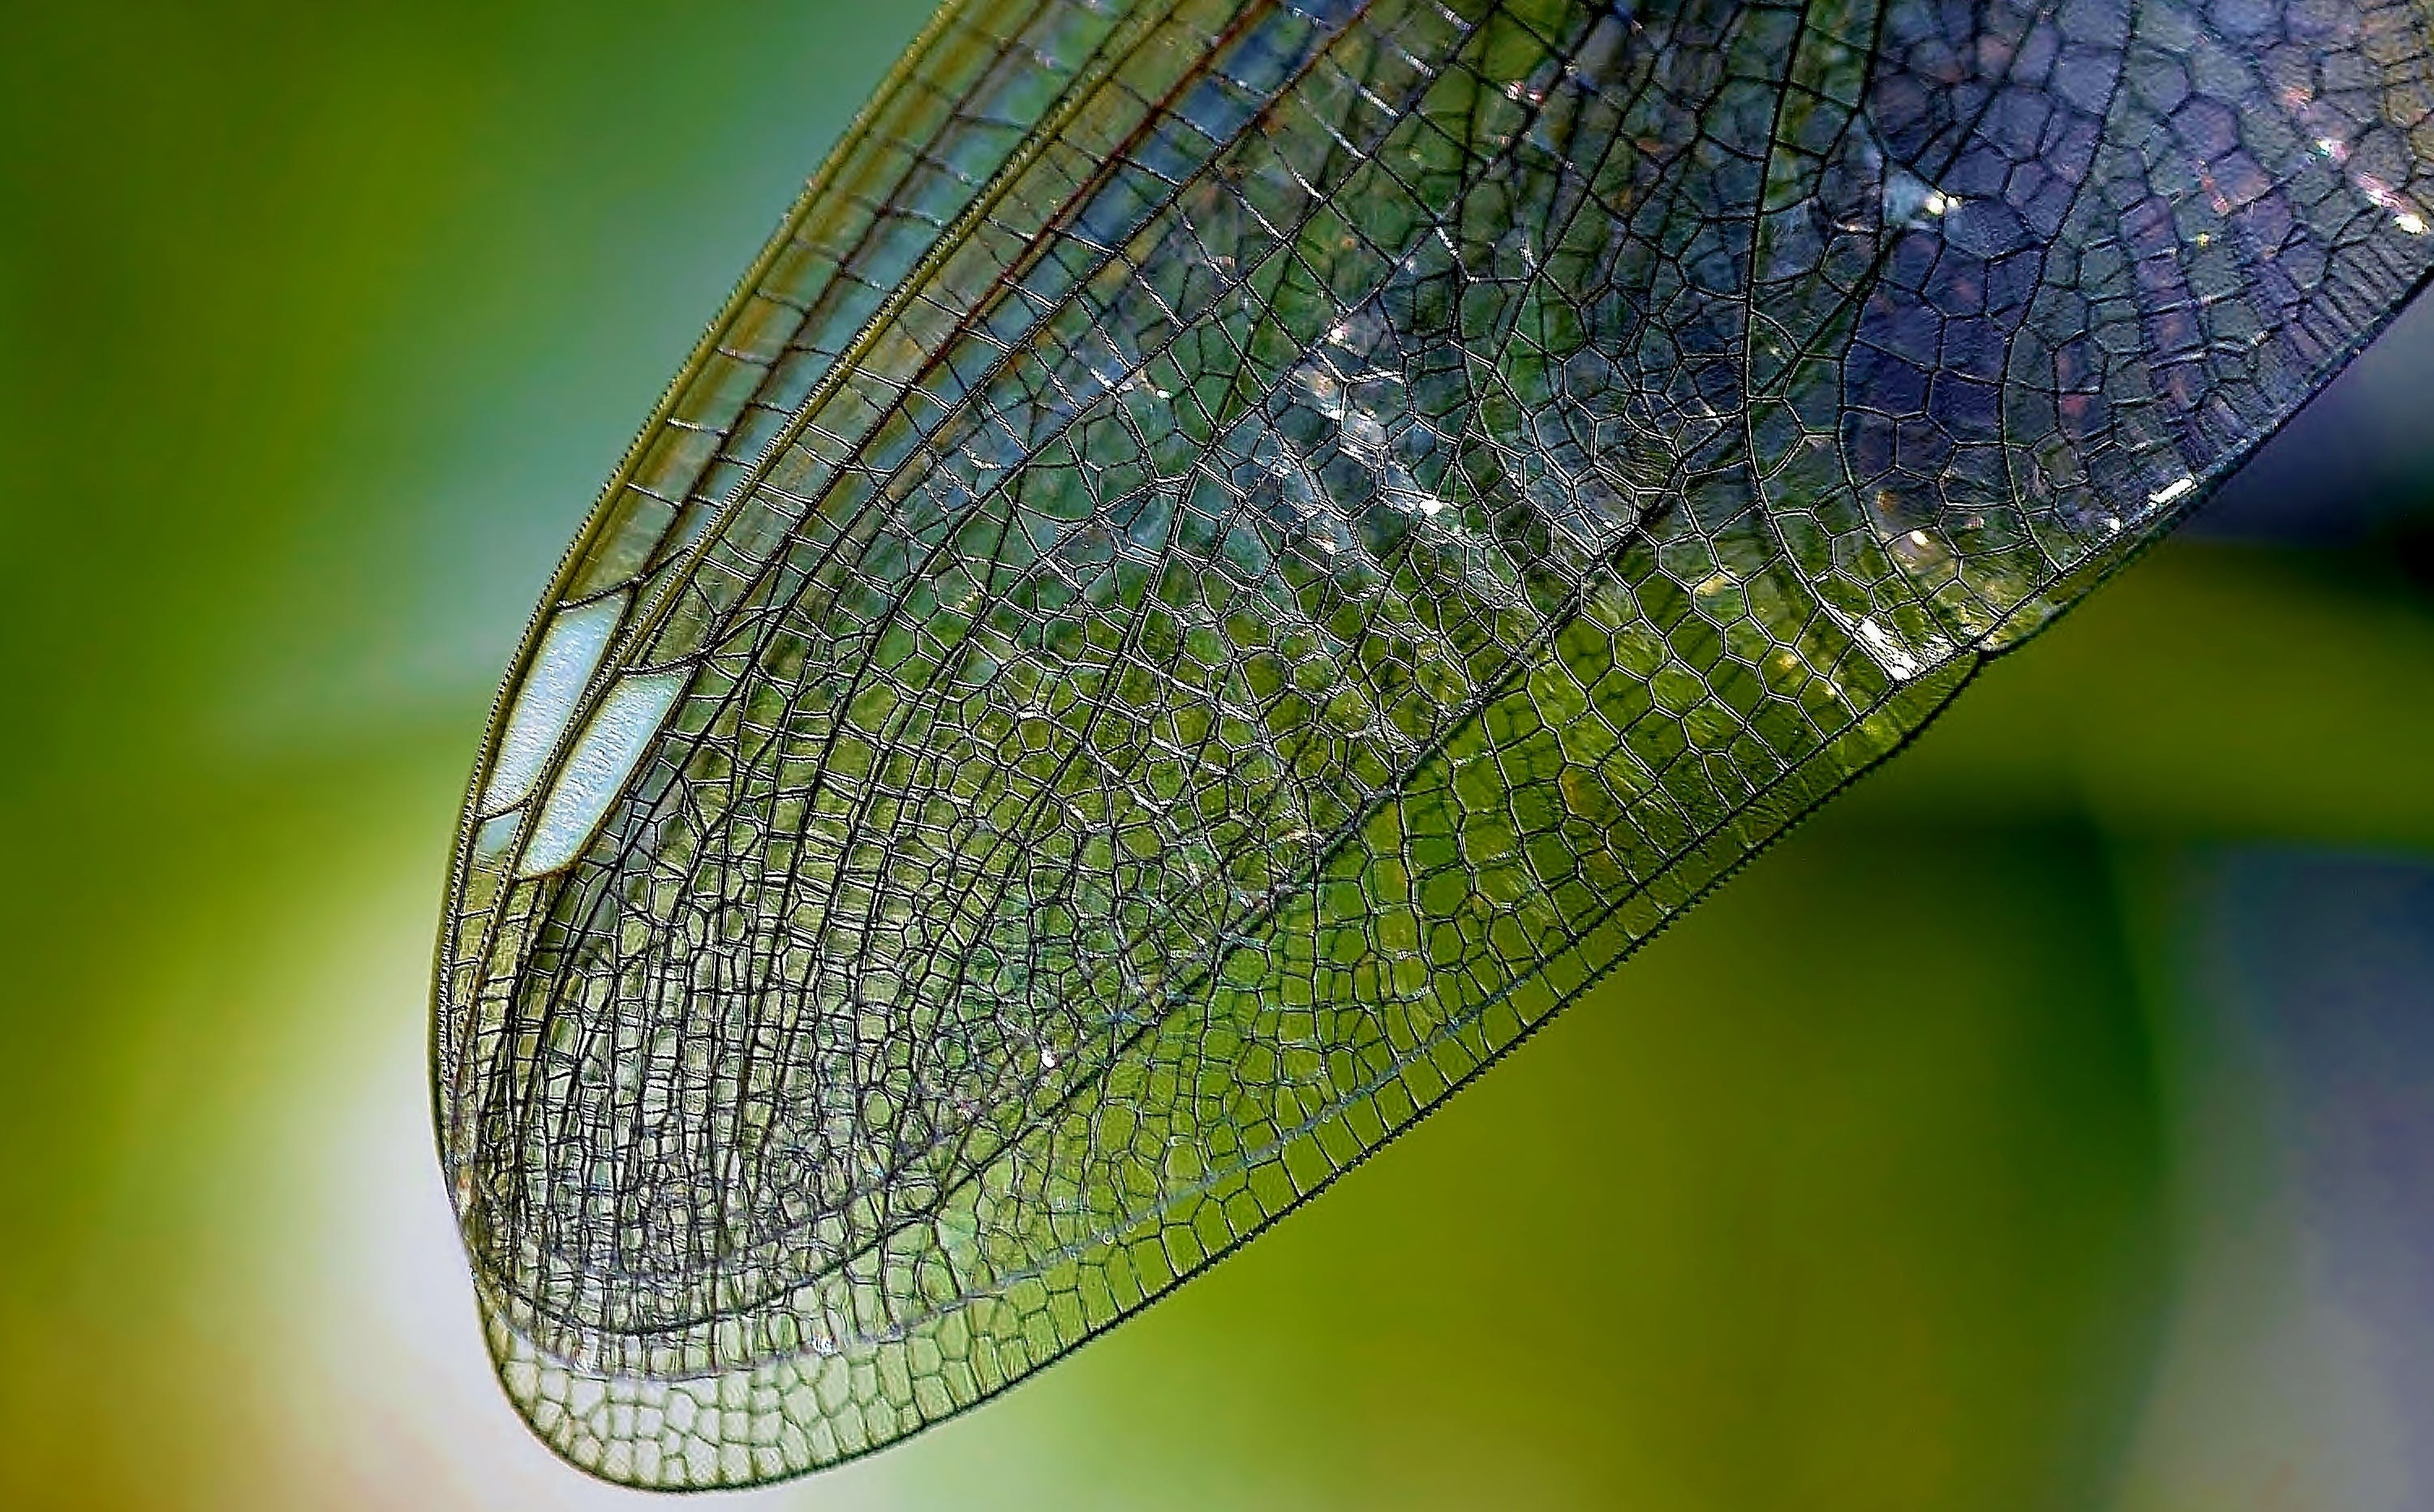 Macro Photography of Dragonfly's Wings